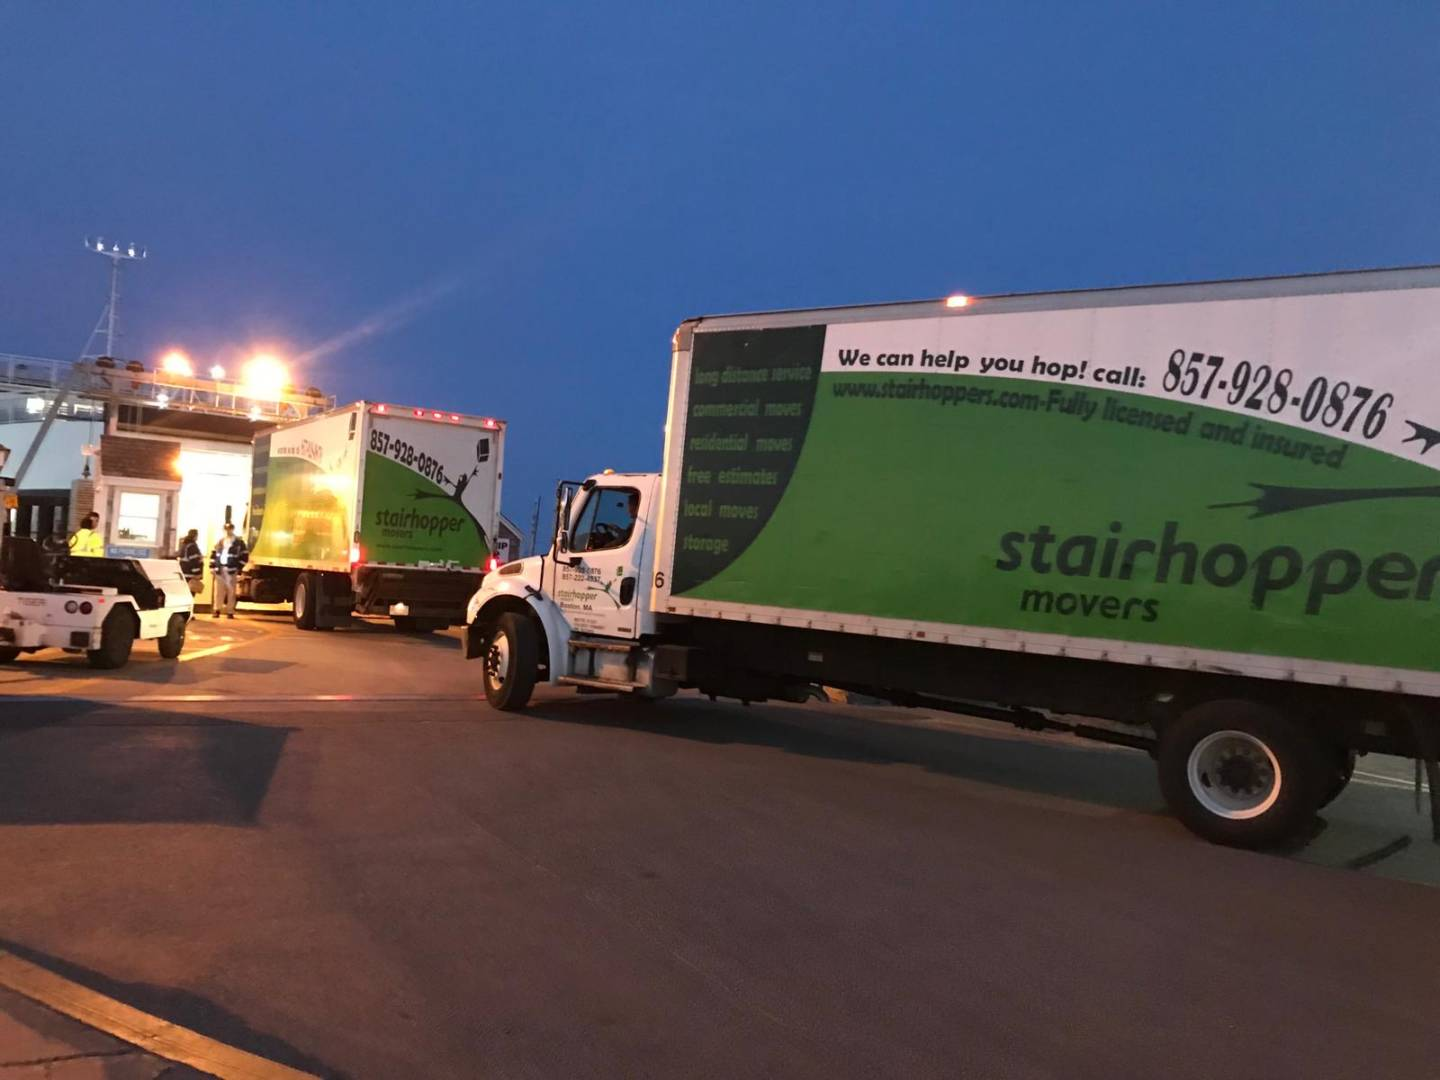 MOVERS IN GLOUCESTER | STAIRHOPPER MOVERS